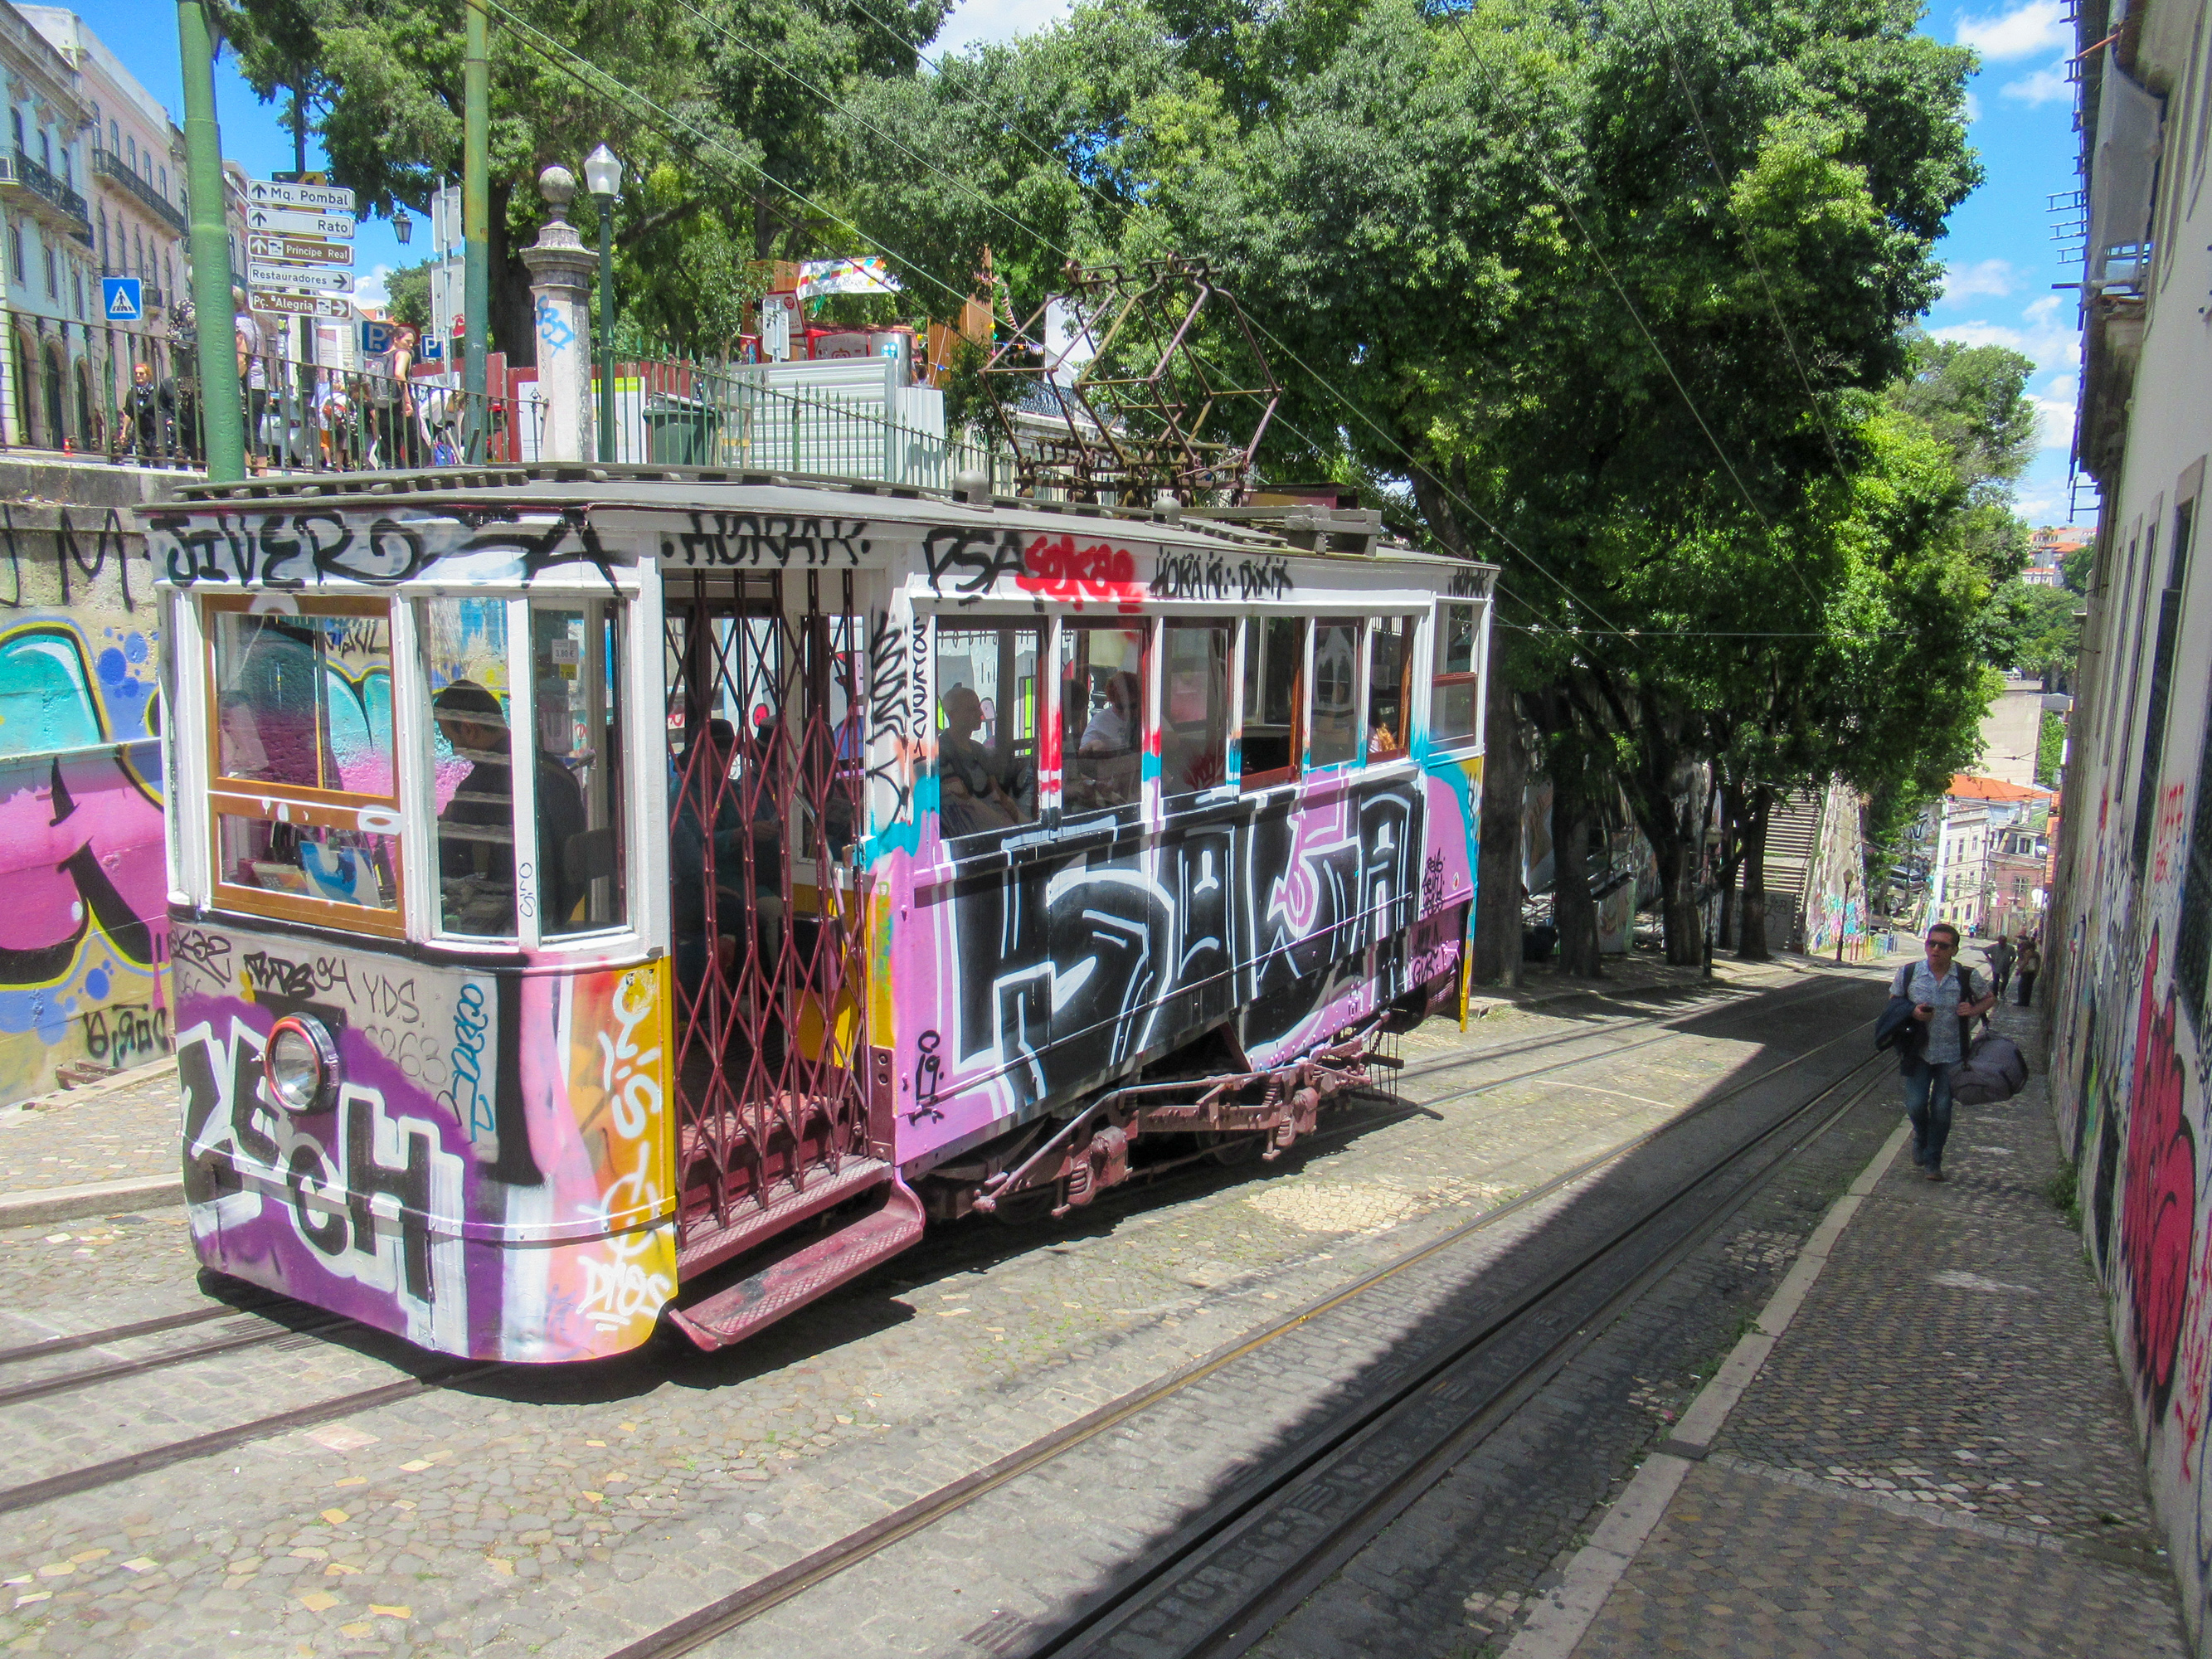 Streetcars in Lisbon, Portugal.